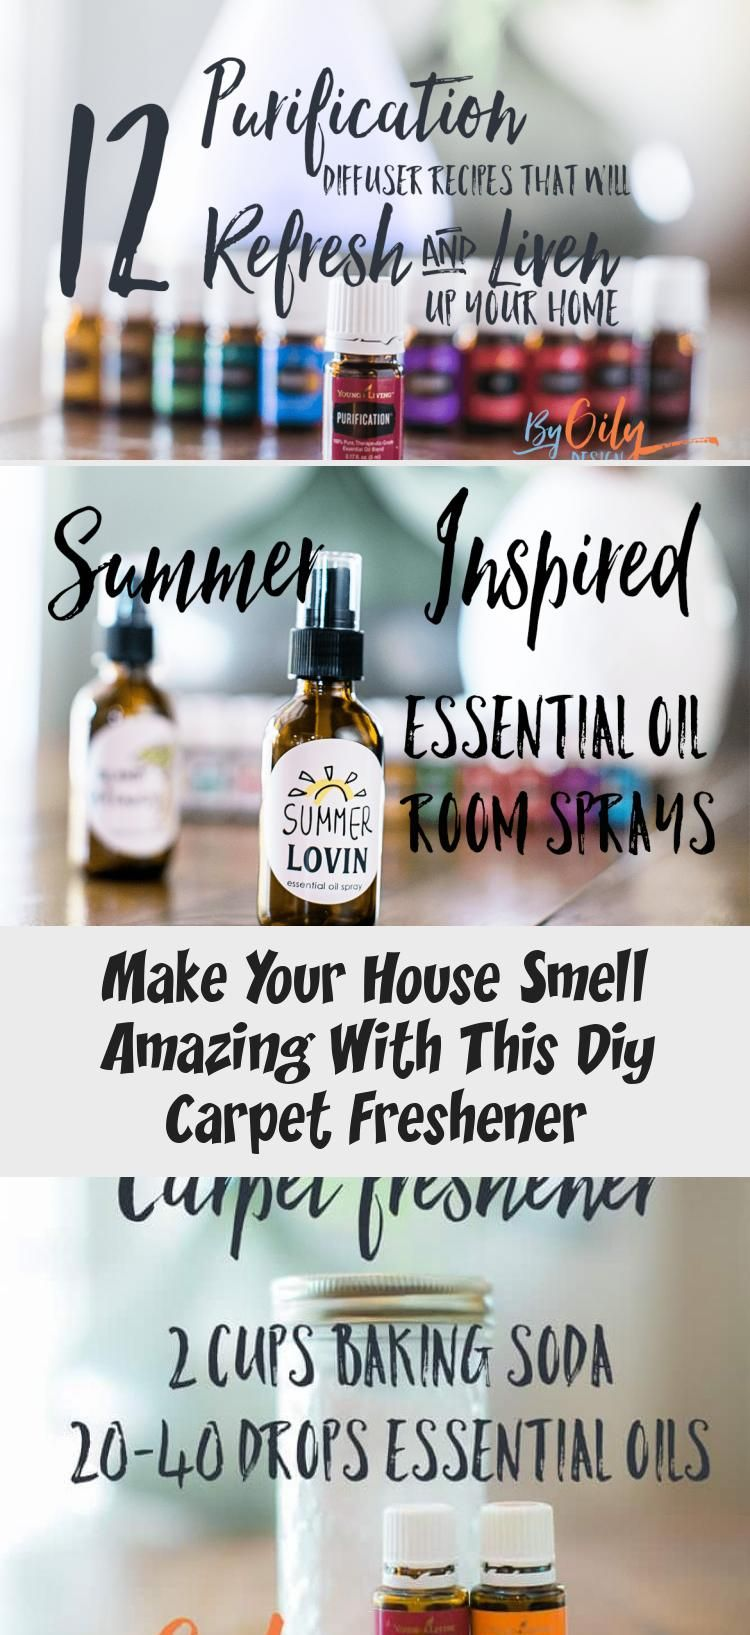 Neutralize House Smells With This Diy Carpet Deodorizer Using Baking Soda And Essential Oils Create A Si Carpet Freshener Diy Carpet Essential Oils Room Spray